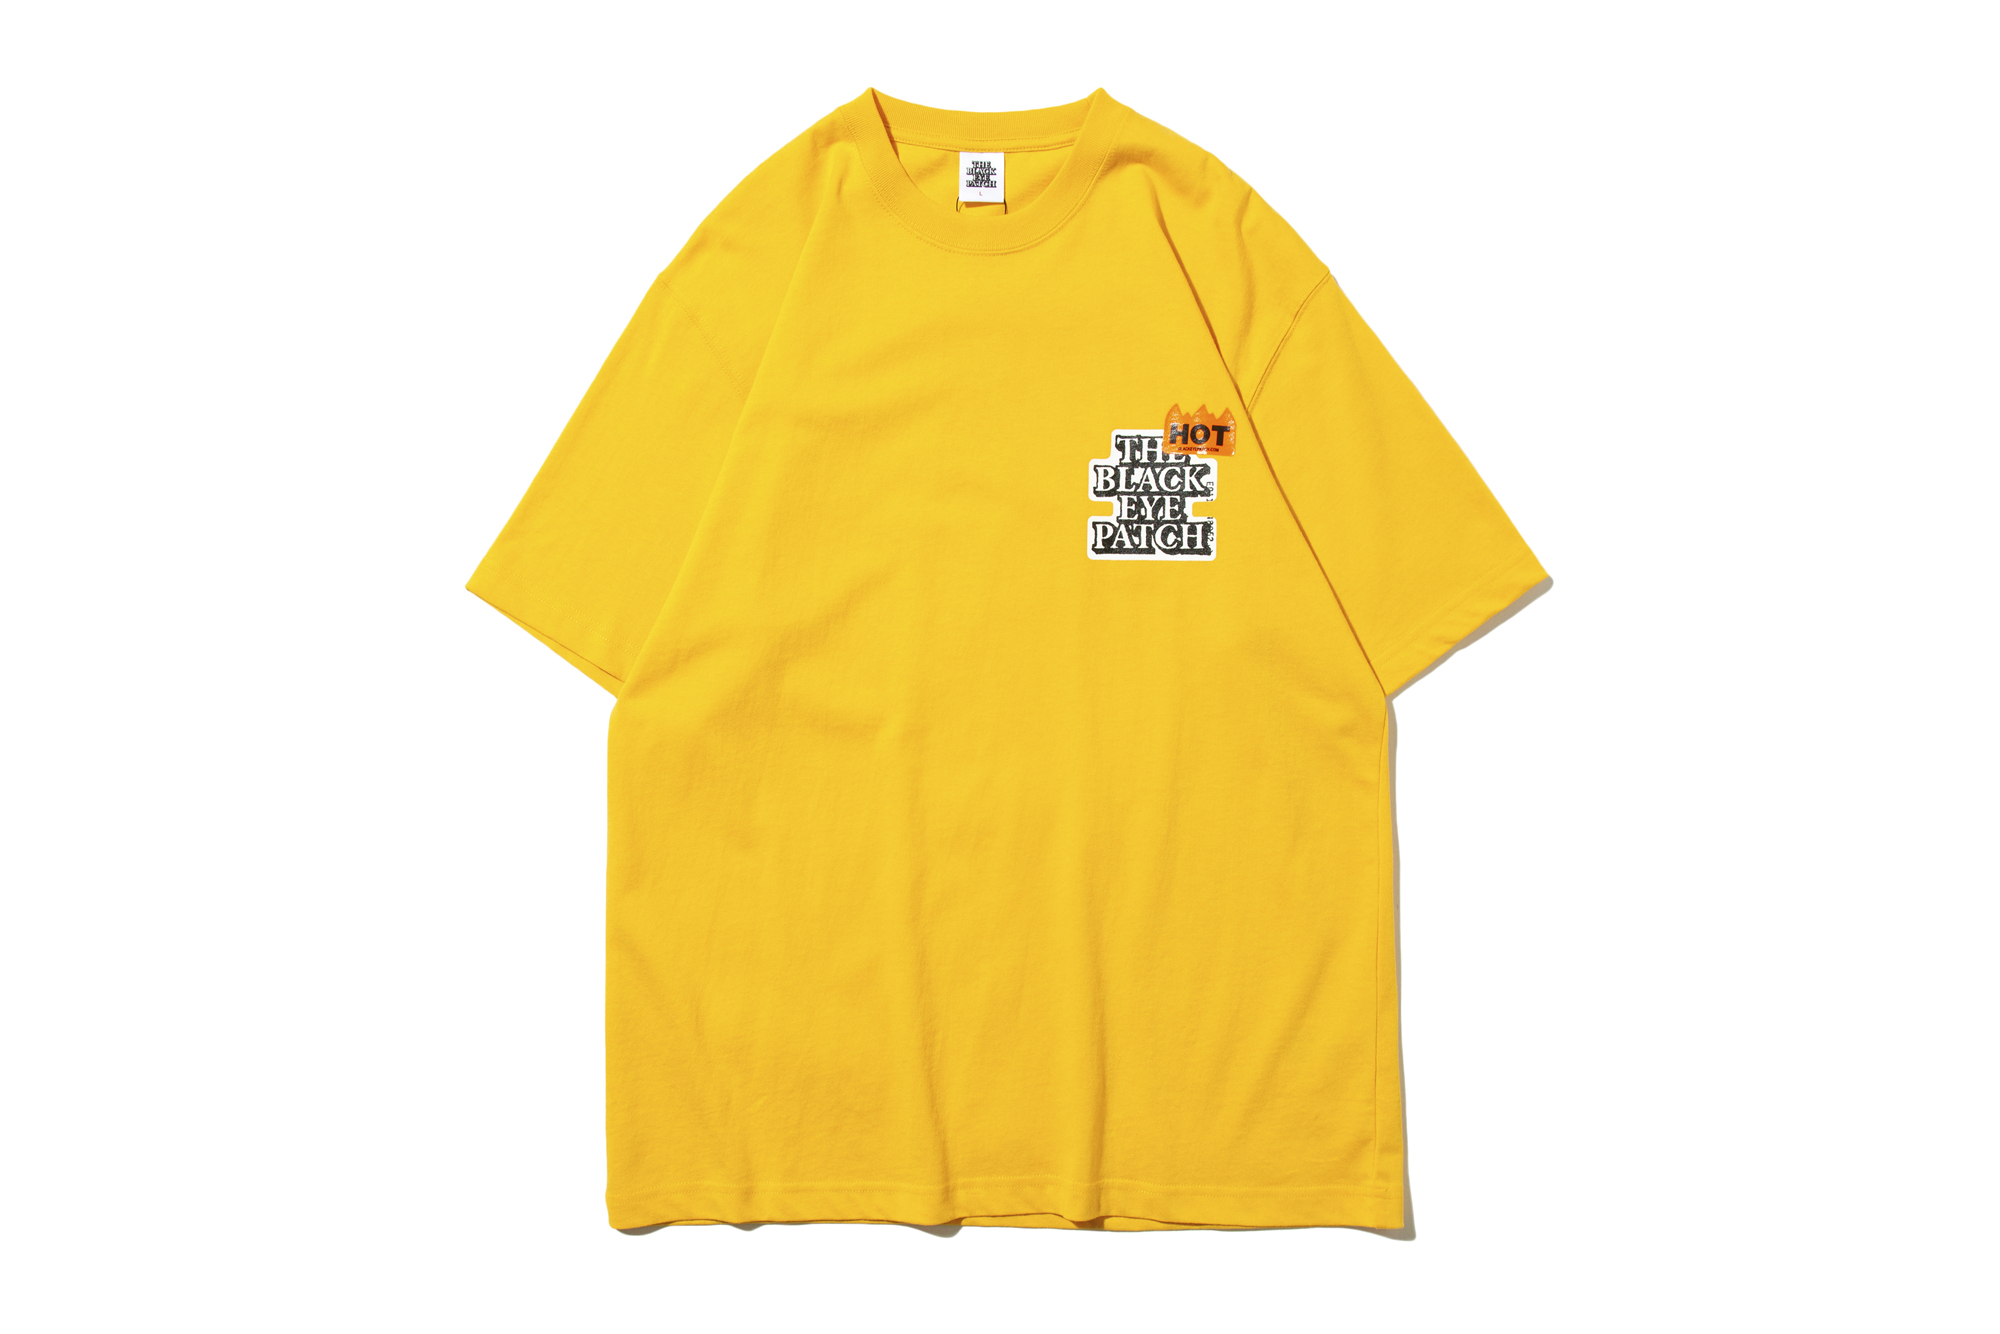 hot-label-tee-yellow_p2